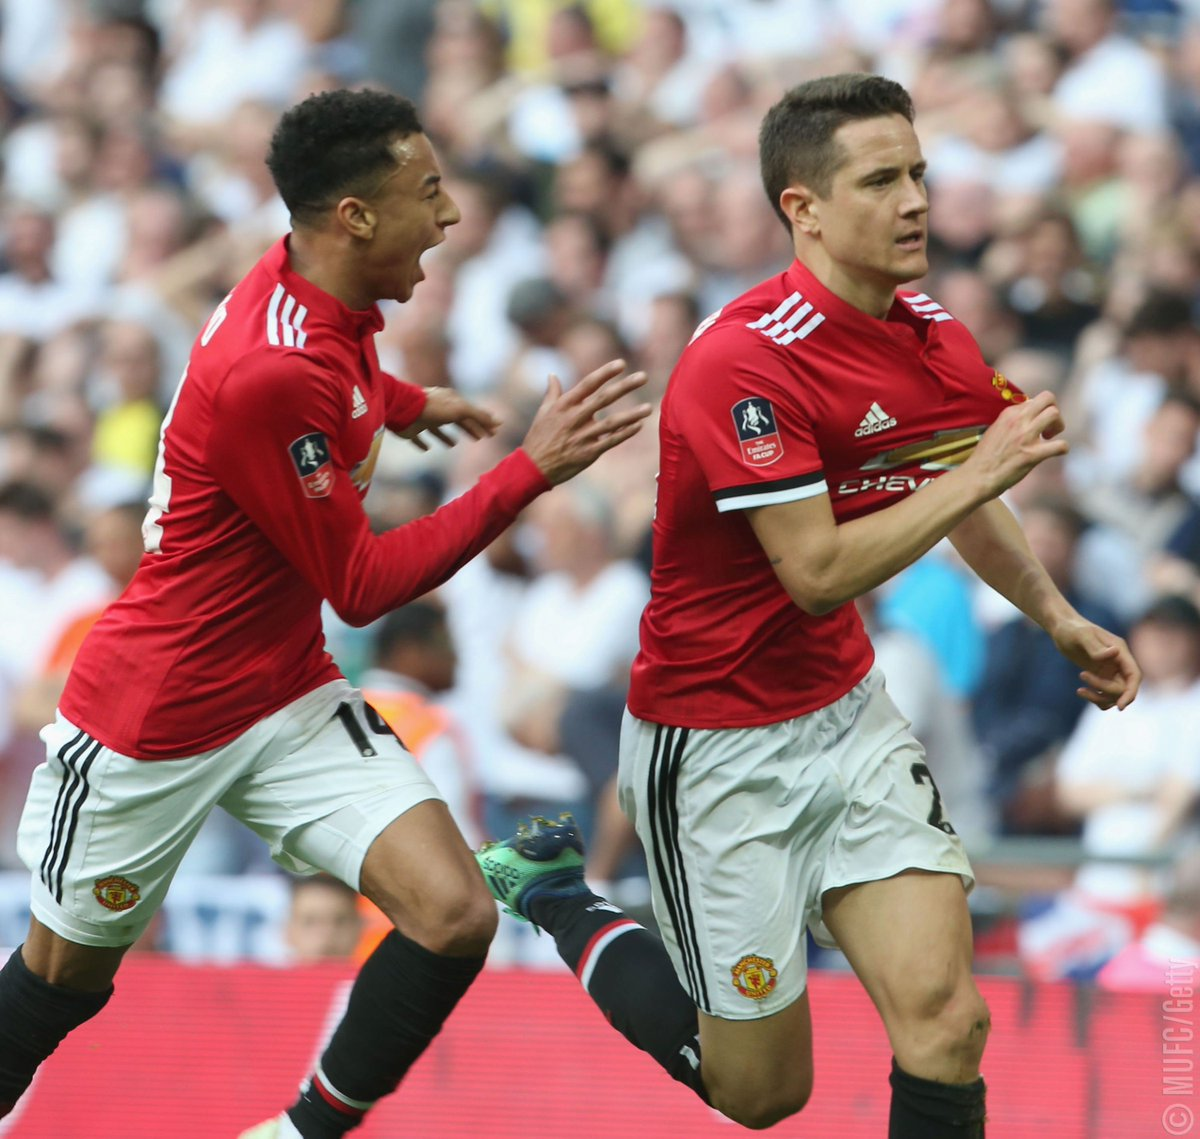 #MUFC in the #EmiratesFACup this season:  5⃣ games 5⃣ wins 1⃣2⃣ goals scored 1⃣goal conceded